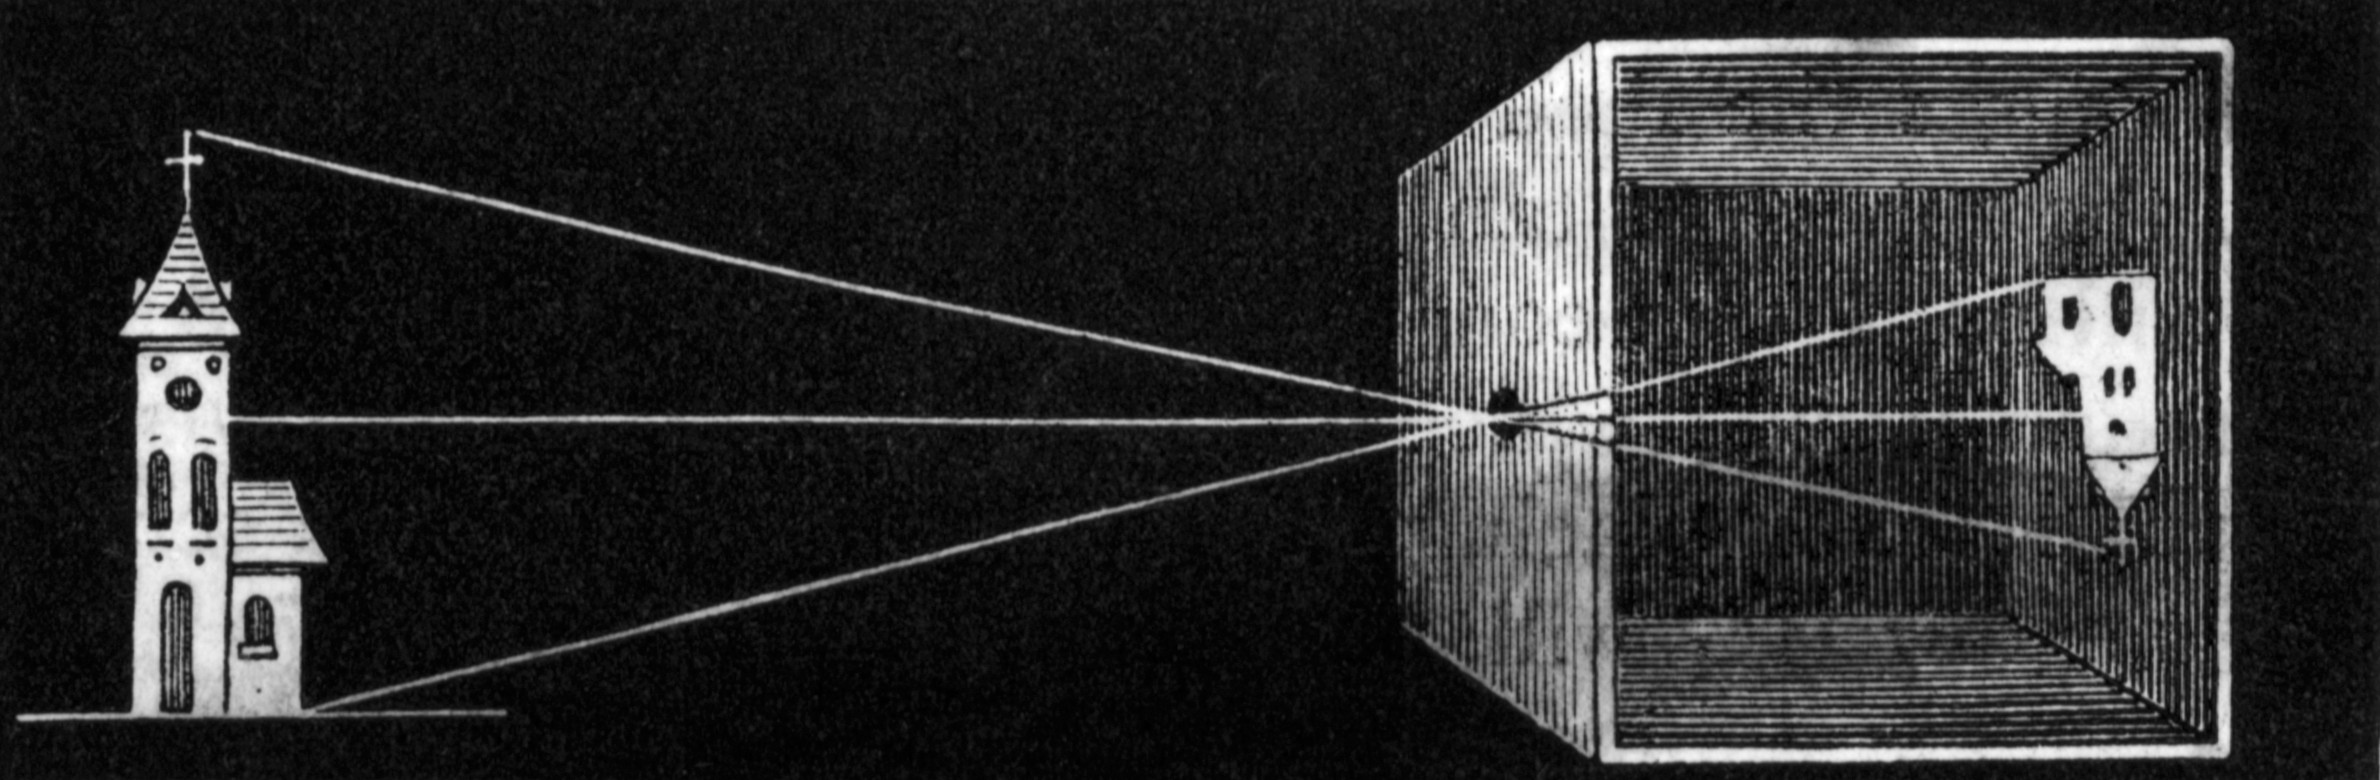 An illustration showing how the camera obscura allows light though a pinhole to project an inverted image on the opposite side of the box. © Bettmann/CORBIS